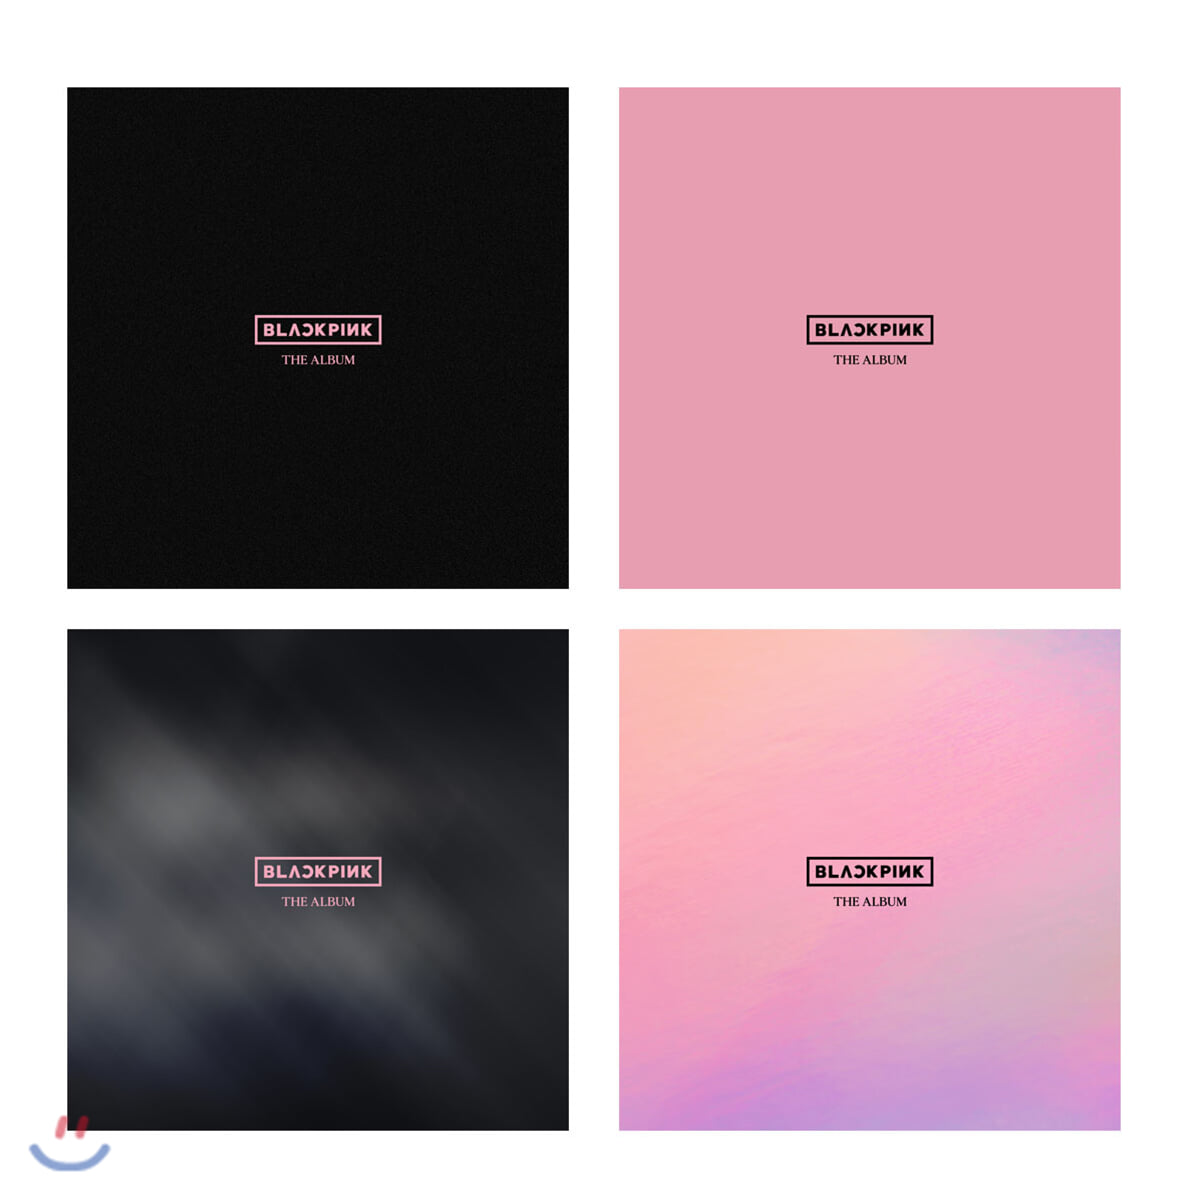 블랙핑크 (BLACKPINK) - BLACKPINK 1st FULL ALBUM [THE ALBUM] [SET]